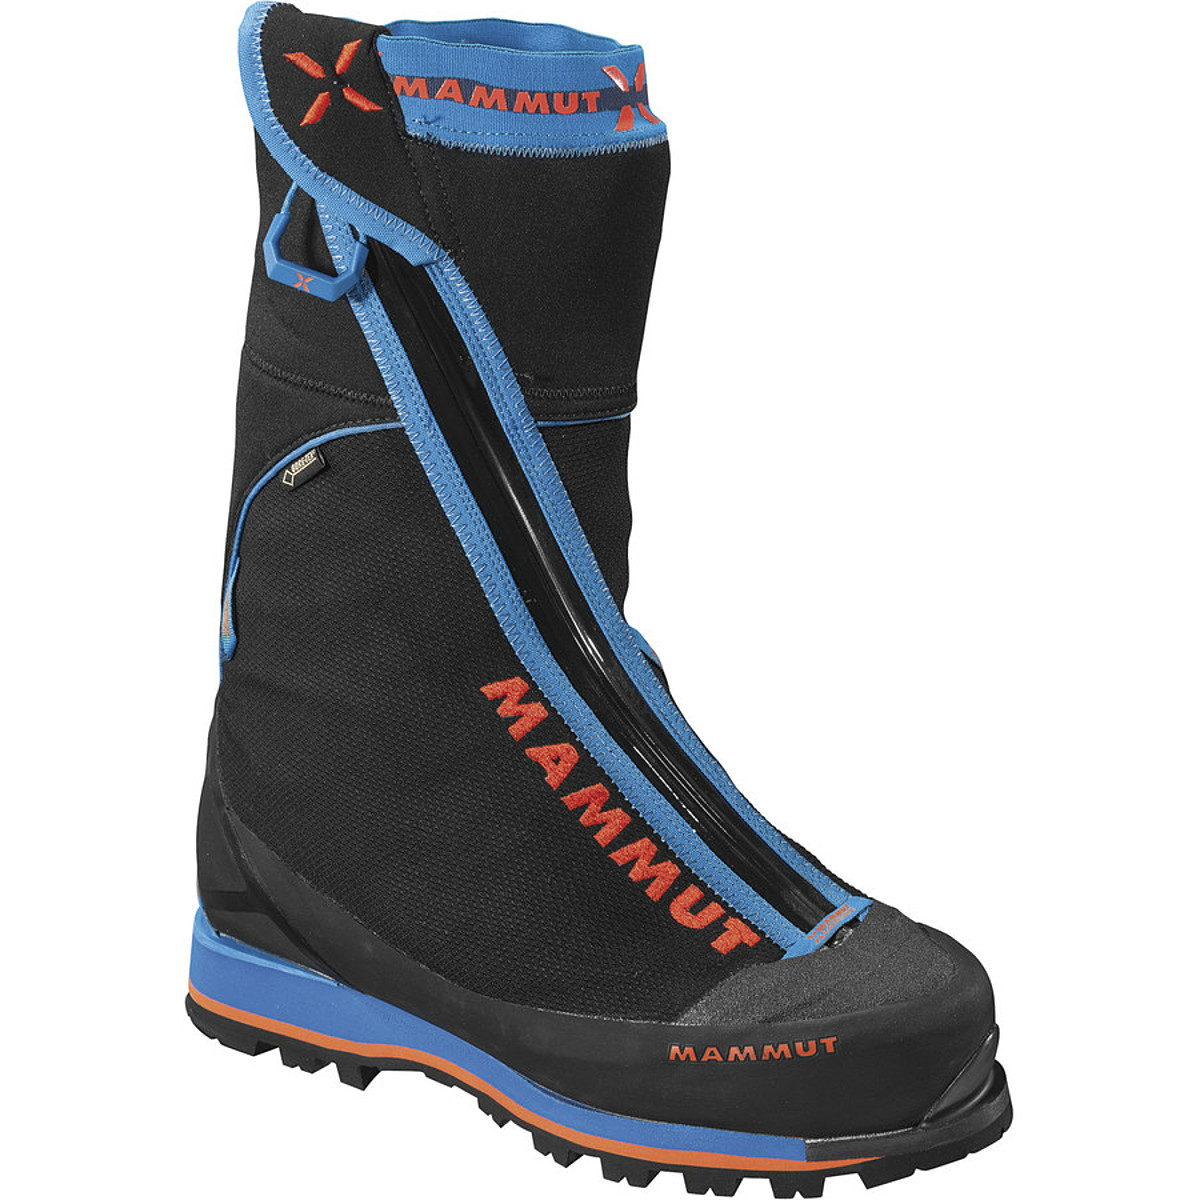 photo: Mammut Nordwand TL mountaineering boot